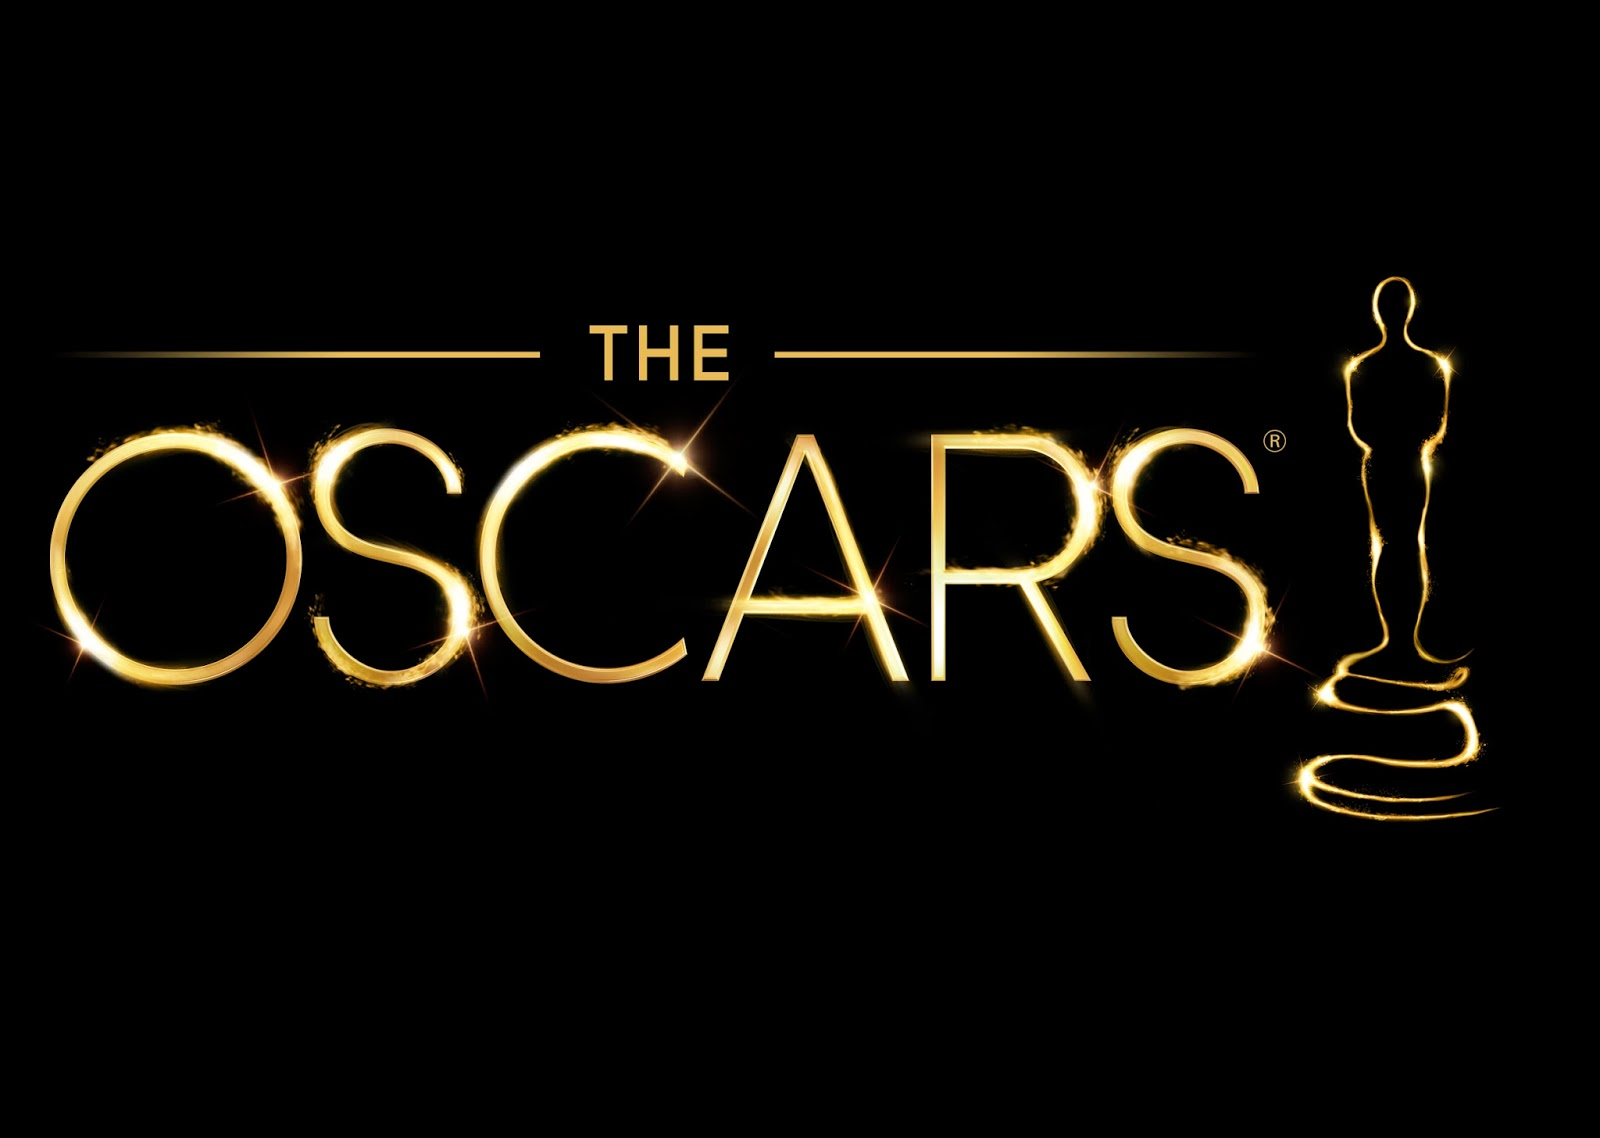 Oscar Screeners The Danish Girl Creed Spy The Lady In The Van 13579086 besides Righting A Past Wrong Academy To Present Spike Lee With Honorary Oscar 20150827 additionally Ethan Hawke On How Indies Are Gourmet And Blockbusters Are A Barbecue 64203 together with 2016 Oscar Predictions further Stranger Things Will Noah Schnapp 934207. on oscar best supporting actor predictions 2015